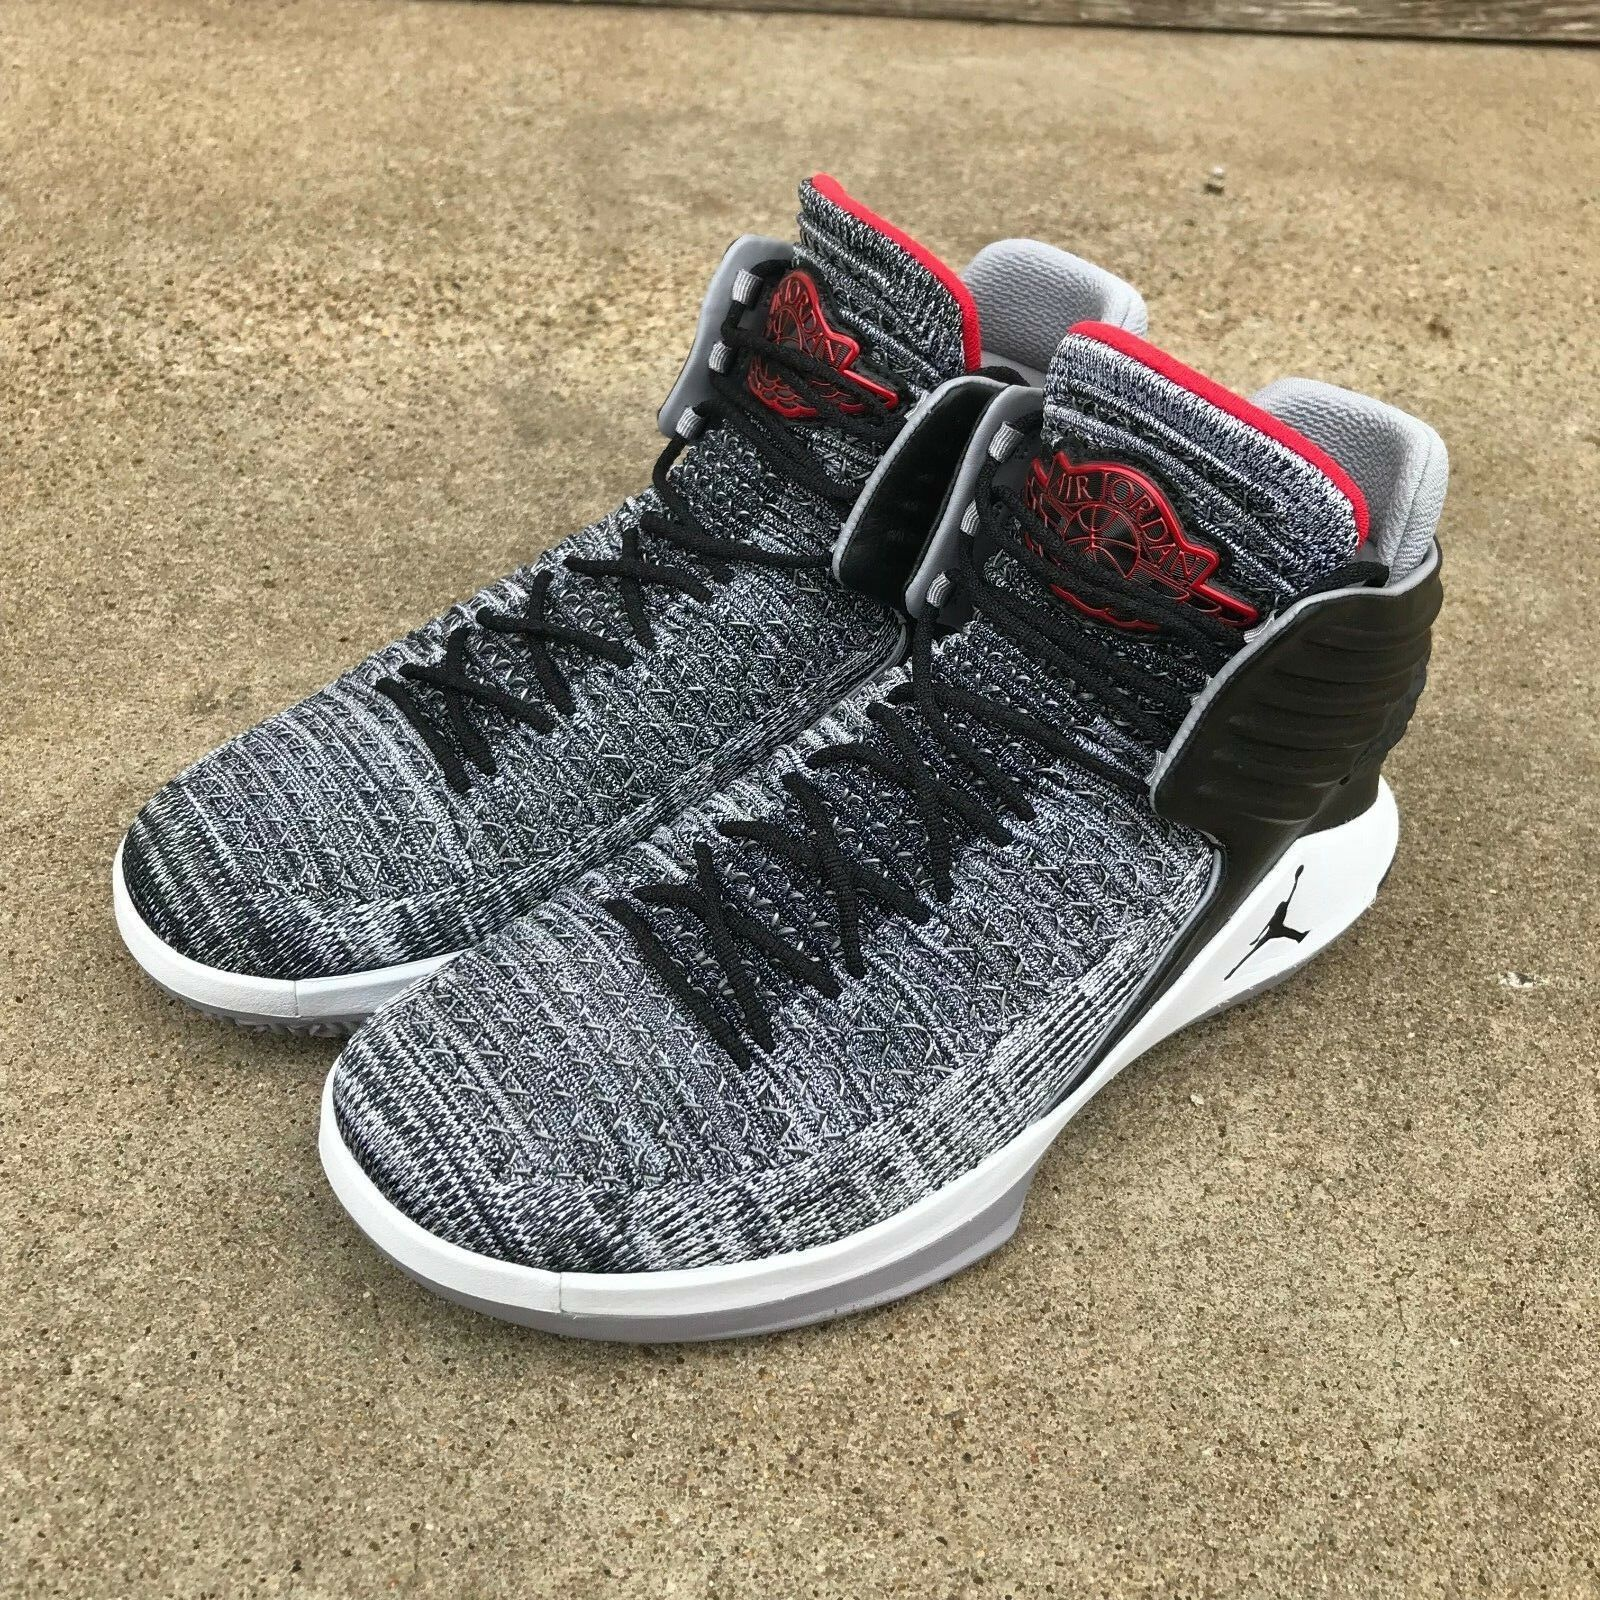 NEW NIKE AIR JORDAN RETRO XXXII 32 MVP MVP MVP Sz 10.5 Black Cement Grey Red AA1253 002 b5464d